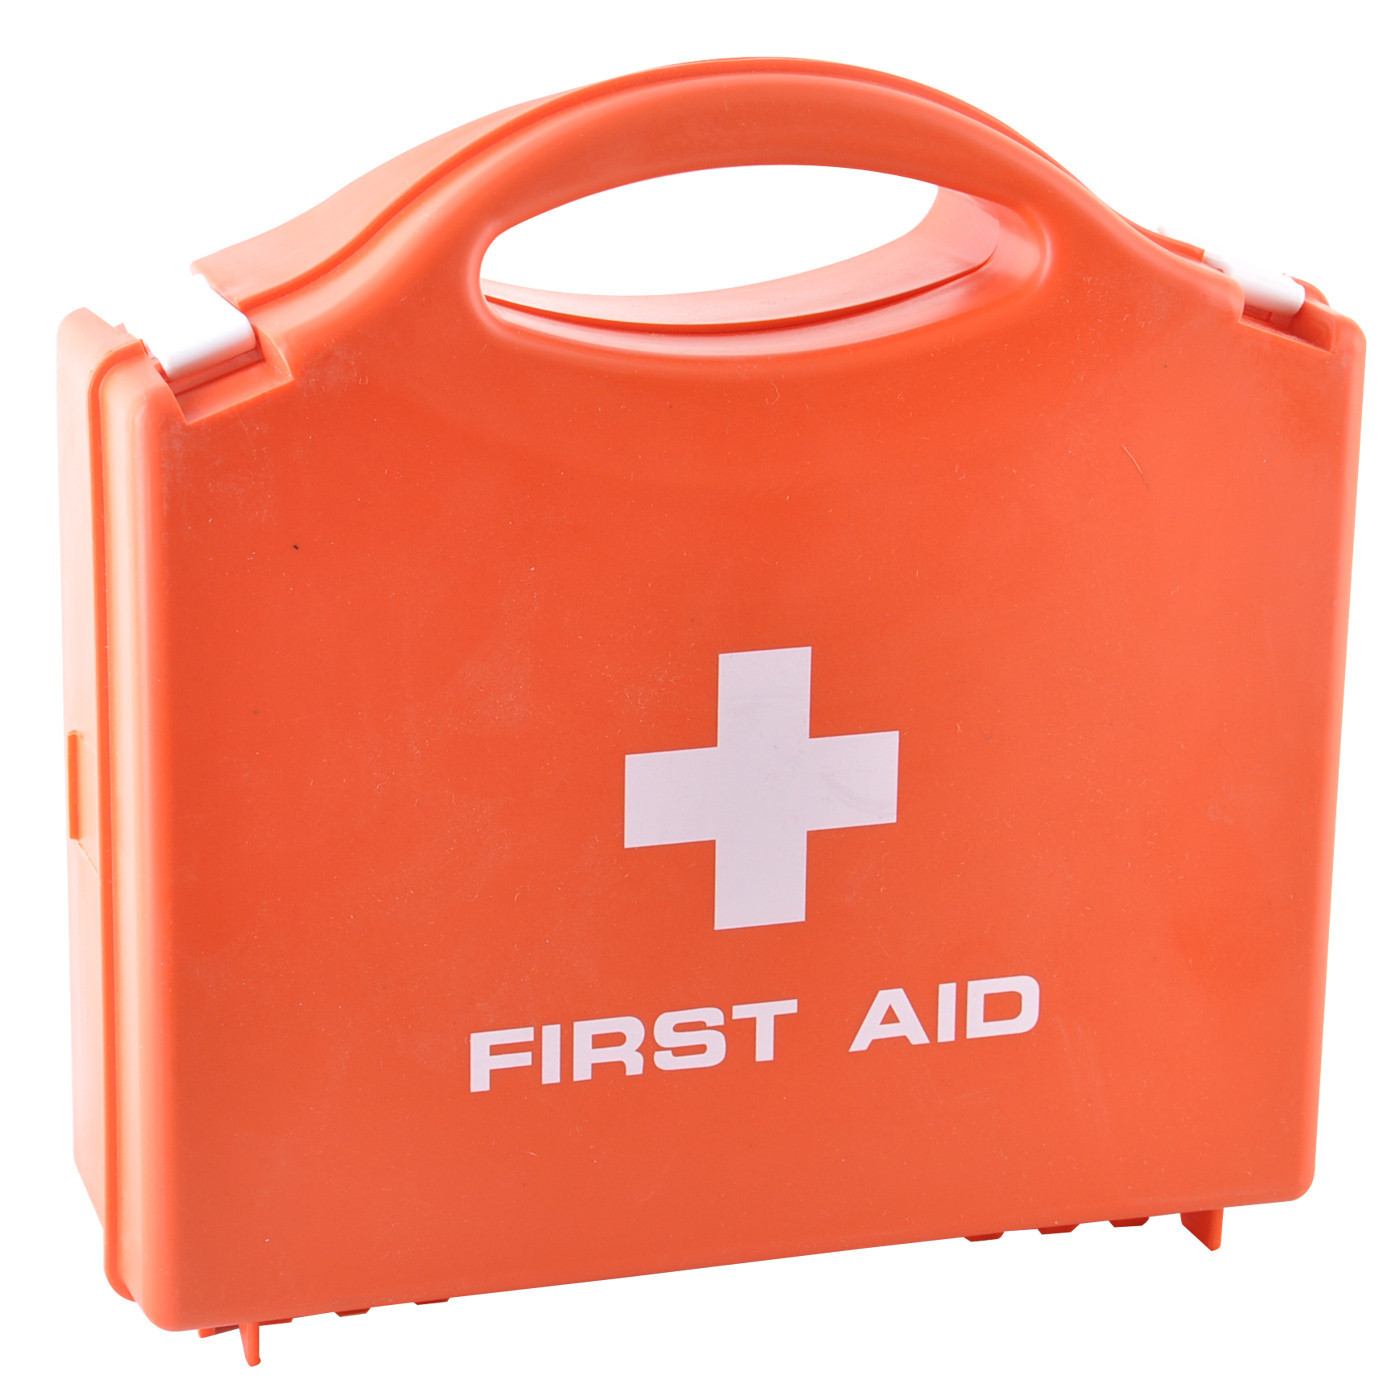 Producer price Car emergency kits first aid kit portable first aid bag outdoor travel car box купить